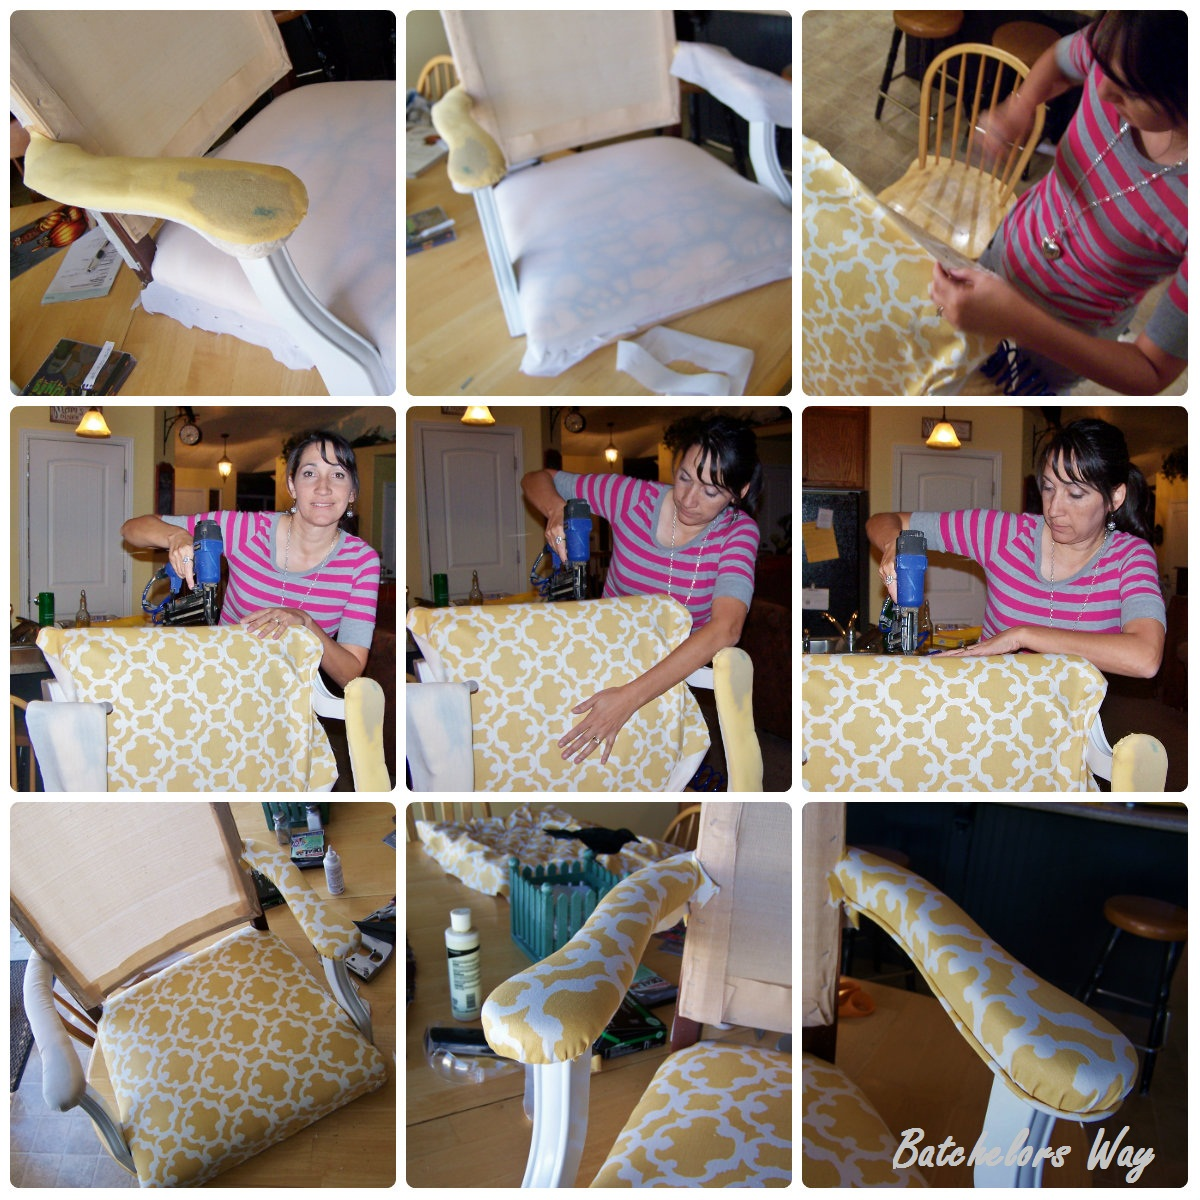 Reupholster Office Chair With Arms Best Hunting Batchelors Way Redo How To A